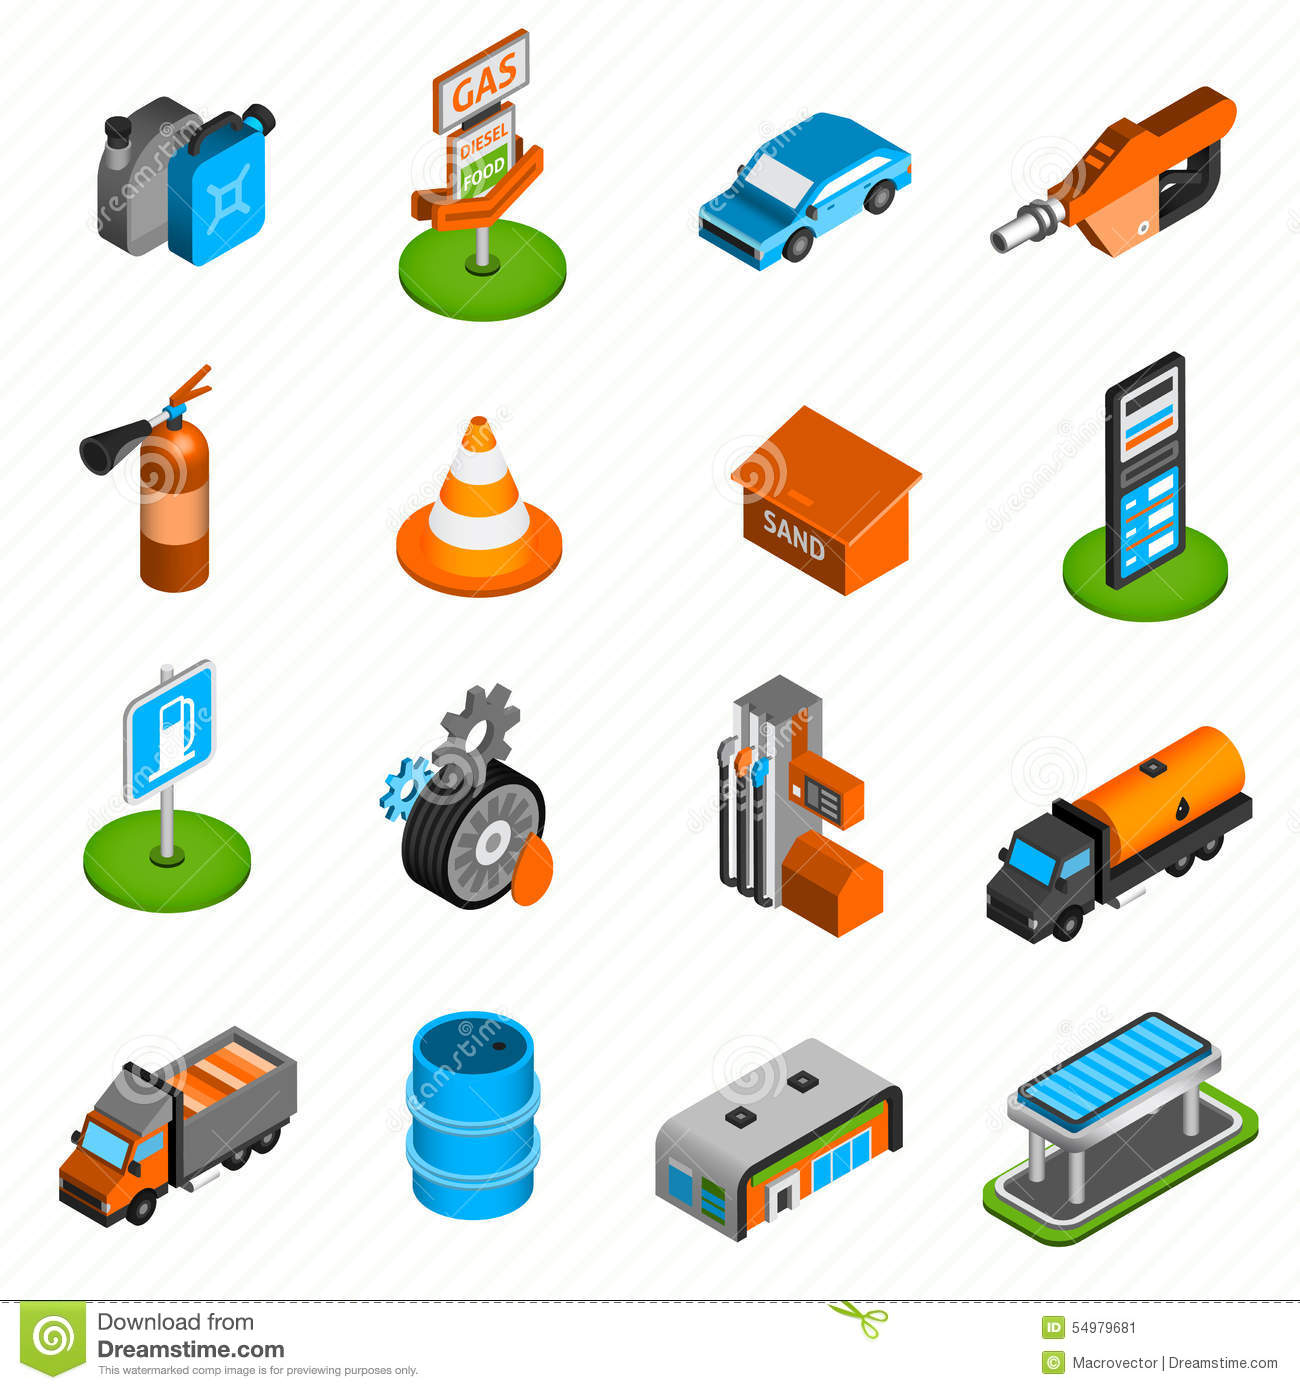 Decorative Fire Extinguisher Gas Station Elements Isometric Icons Stock Vector Image